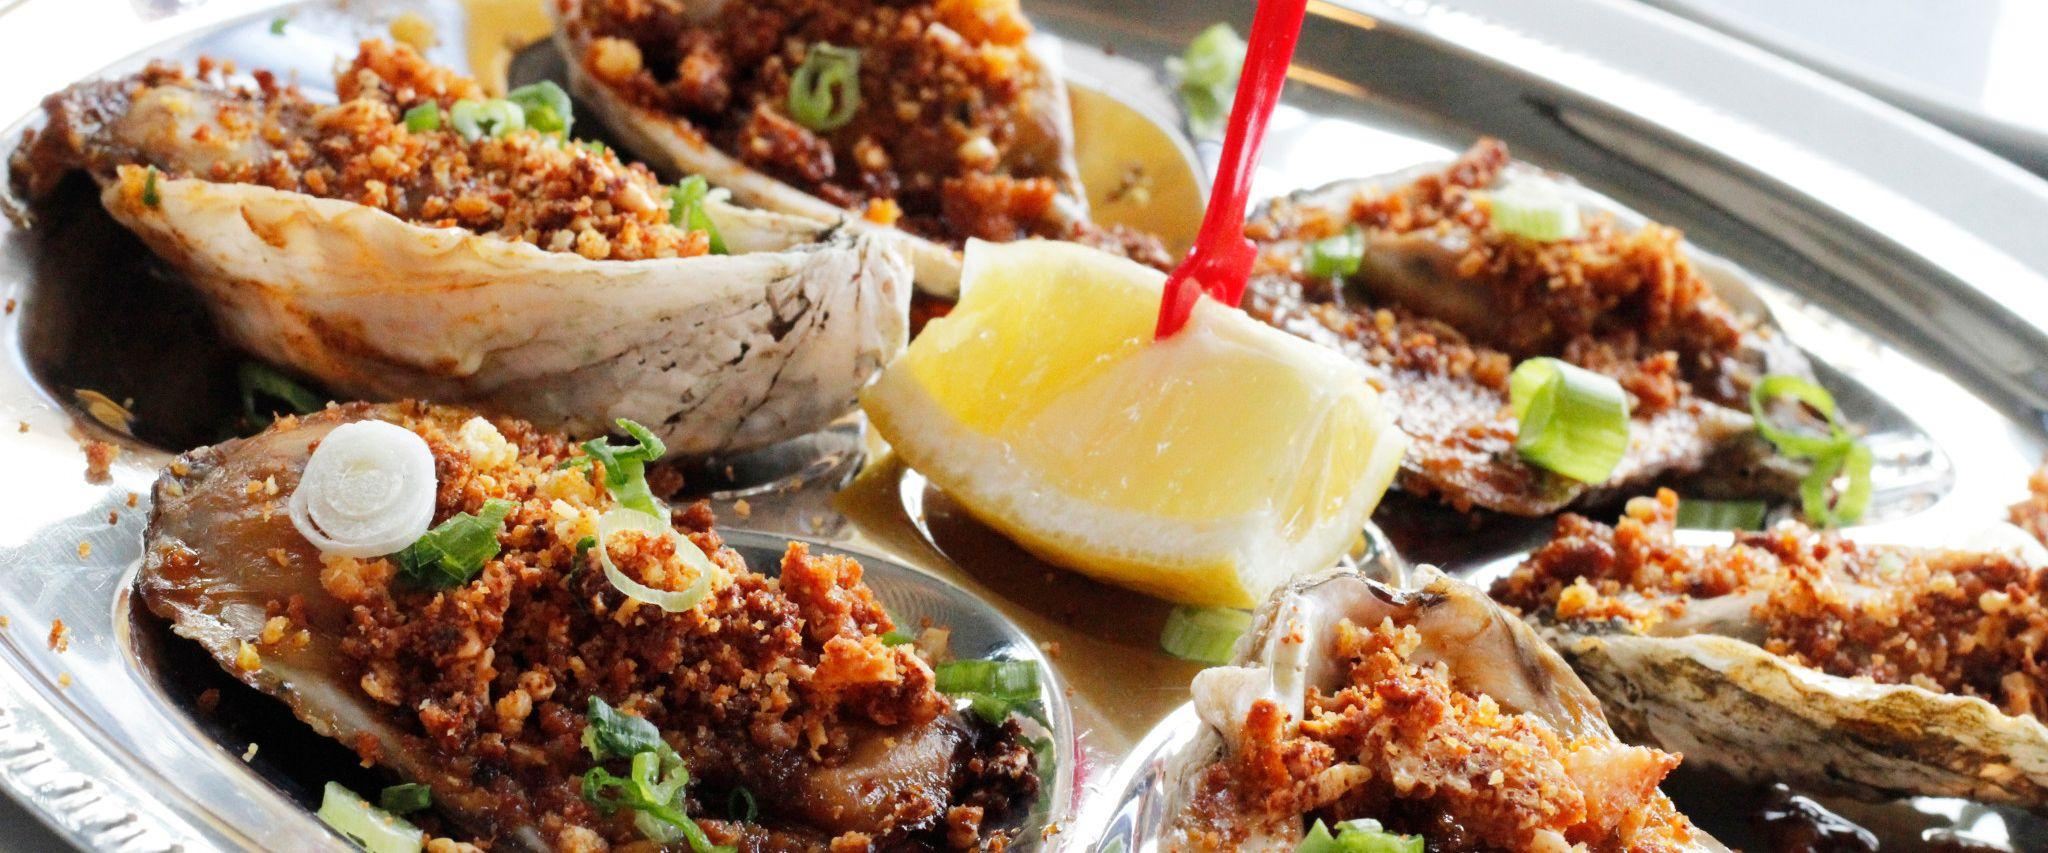 Baked oysters at Fisher's at Orange Beach Marina in Orange Beach, AL